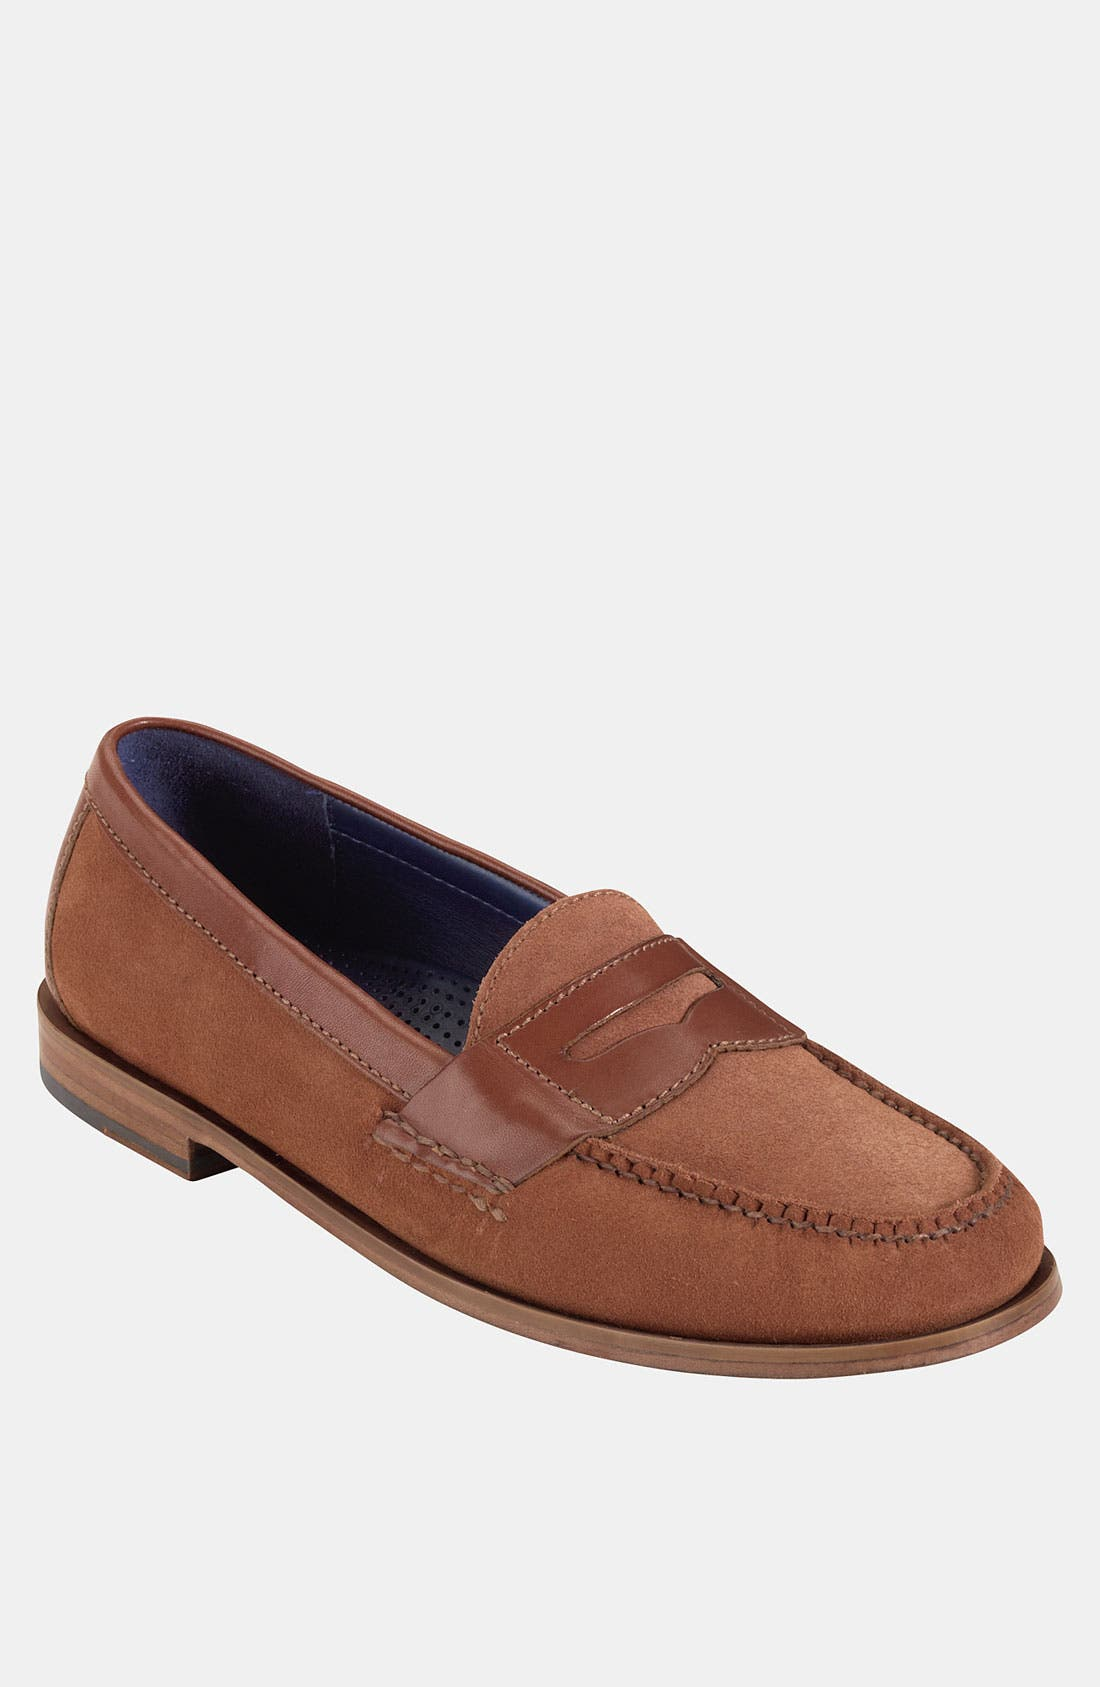 Alternate Image 1 Selected - Cole Haan 'Pinch' Penny Loafer